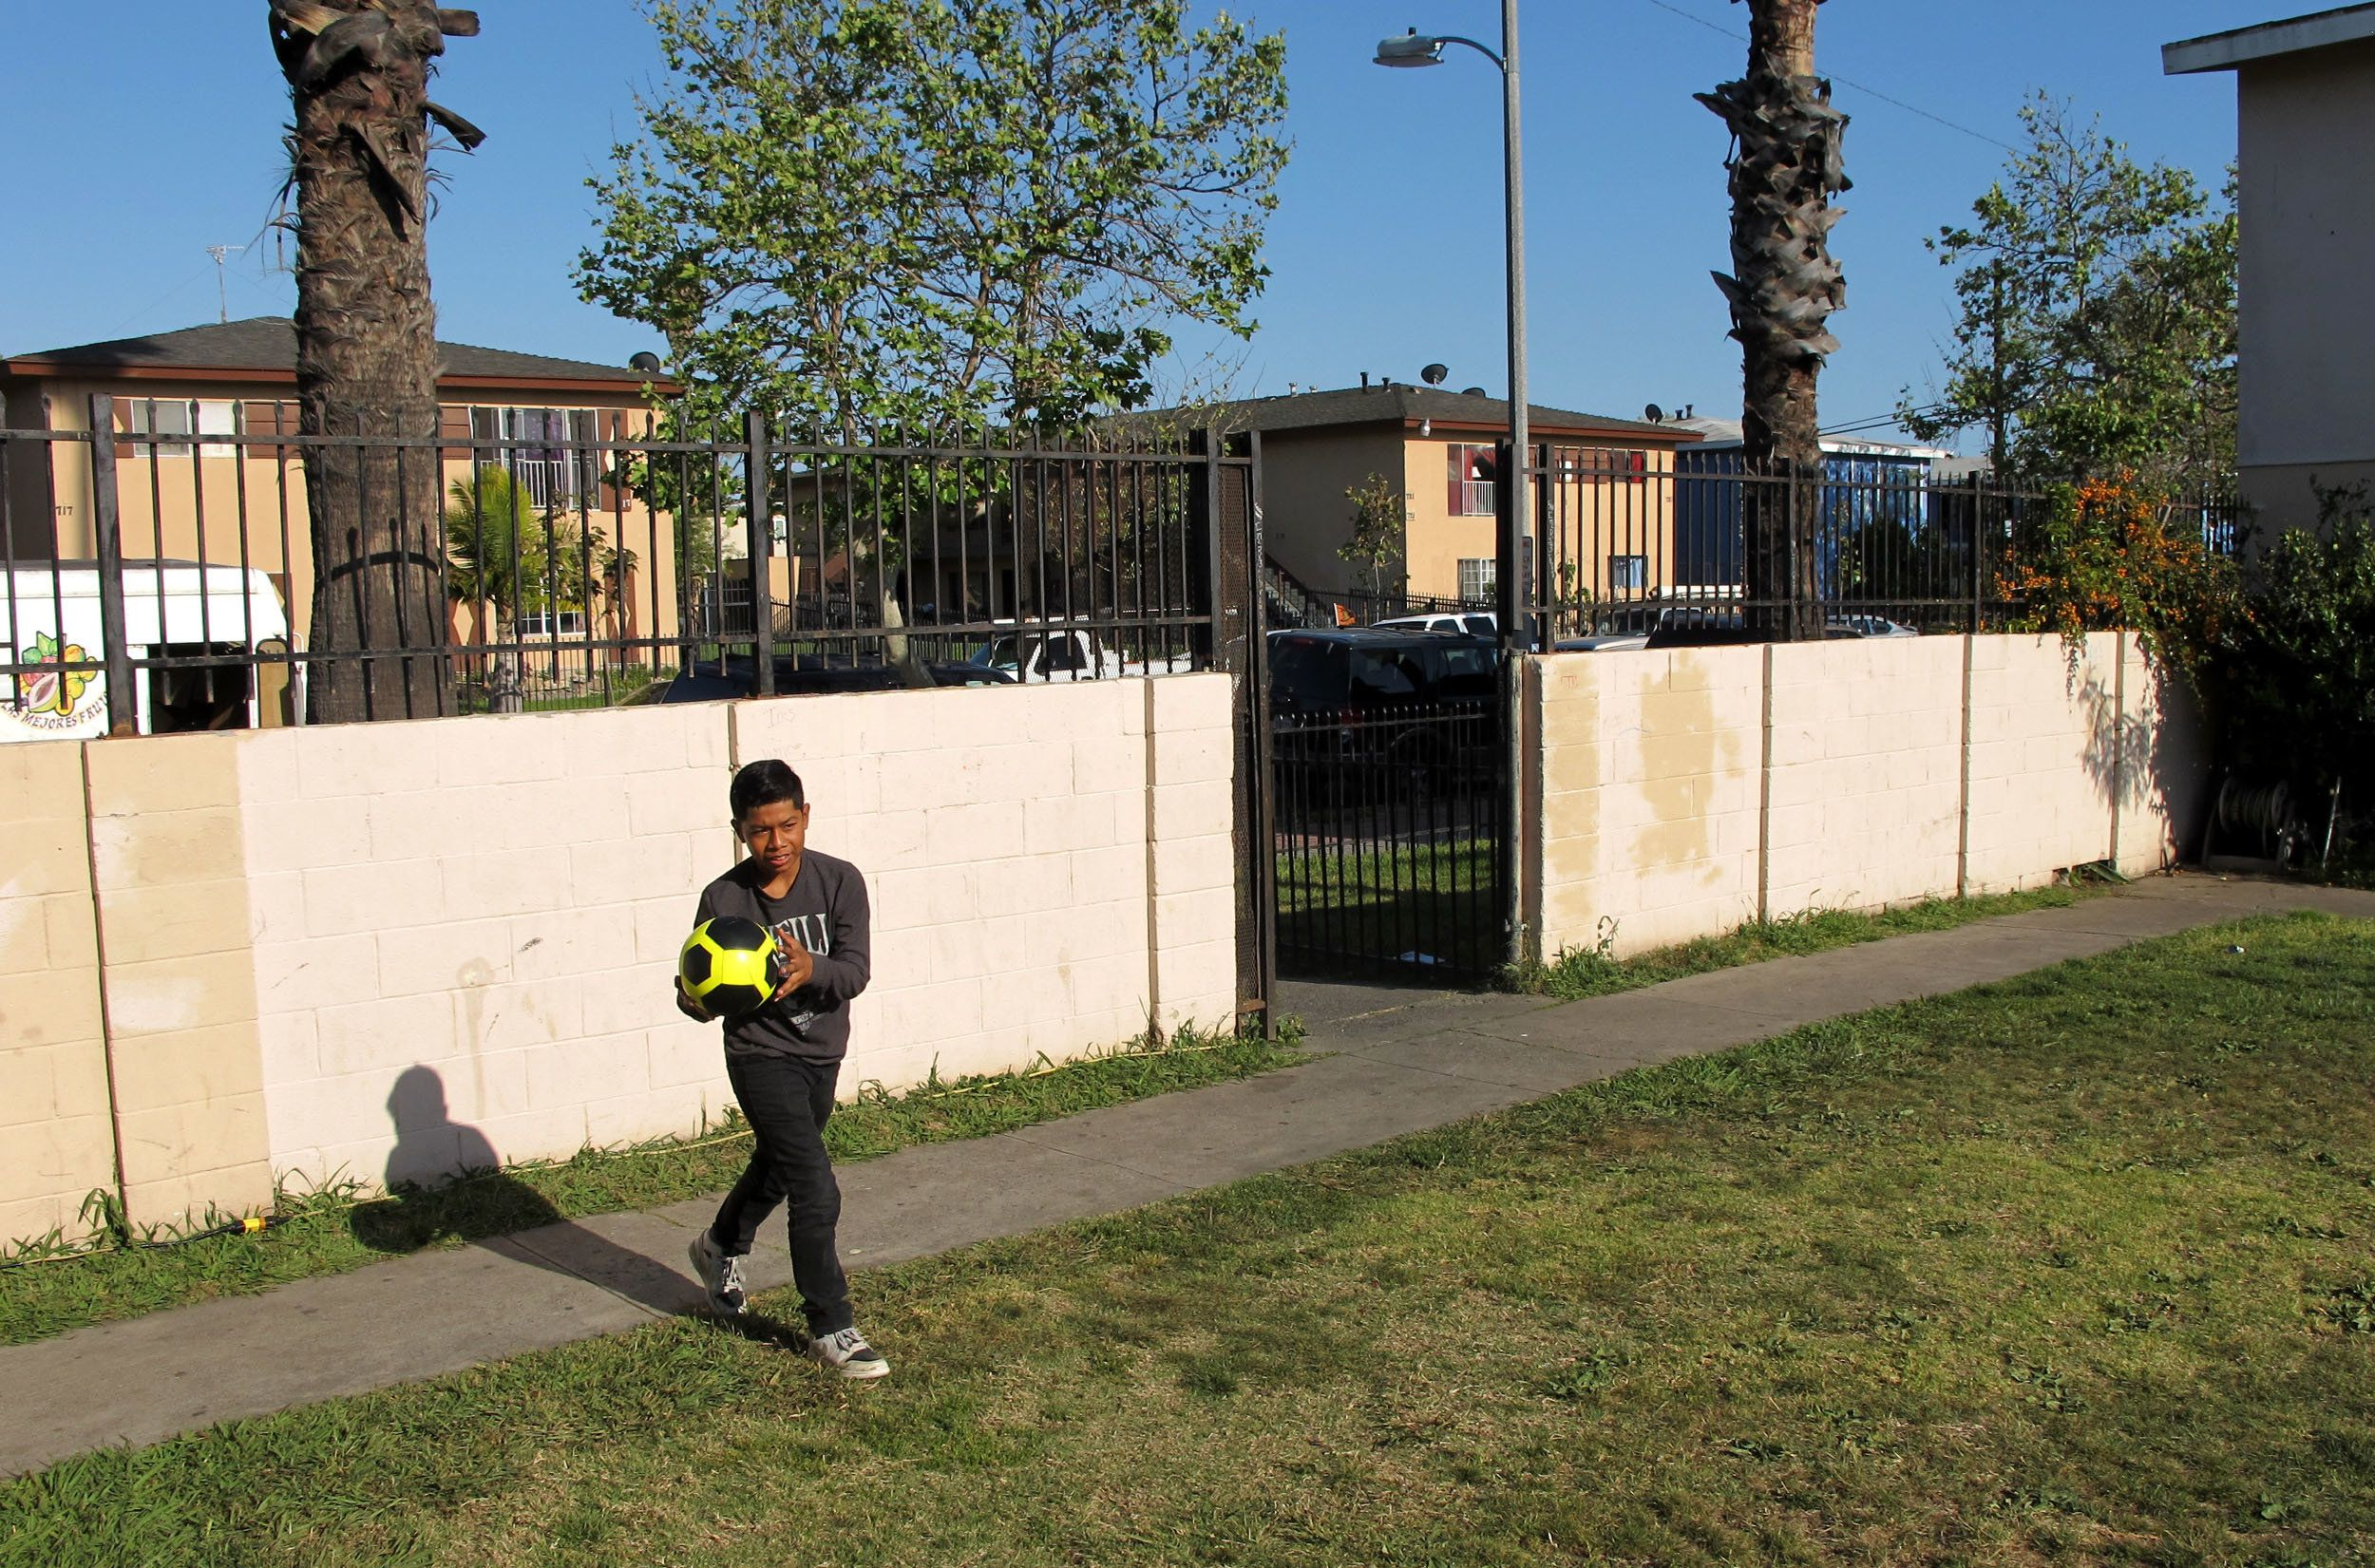 Cesar, 12, plays soccer with his younger brother, Peter (not pictured), in the yard of their Santa Ana apartment complex in A